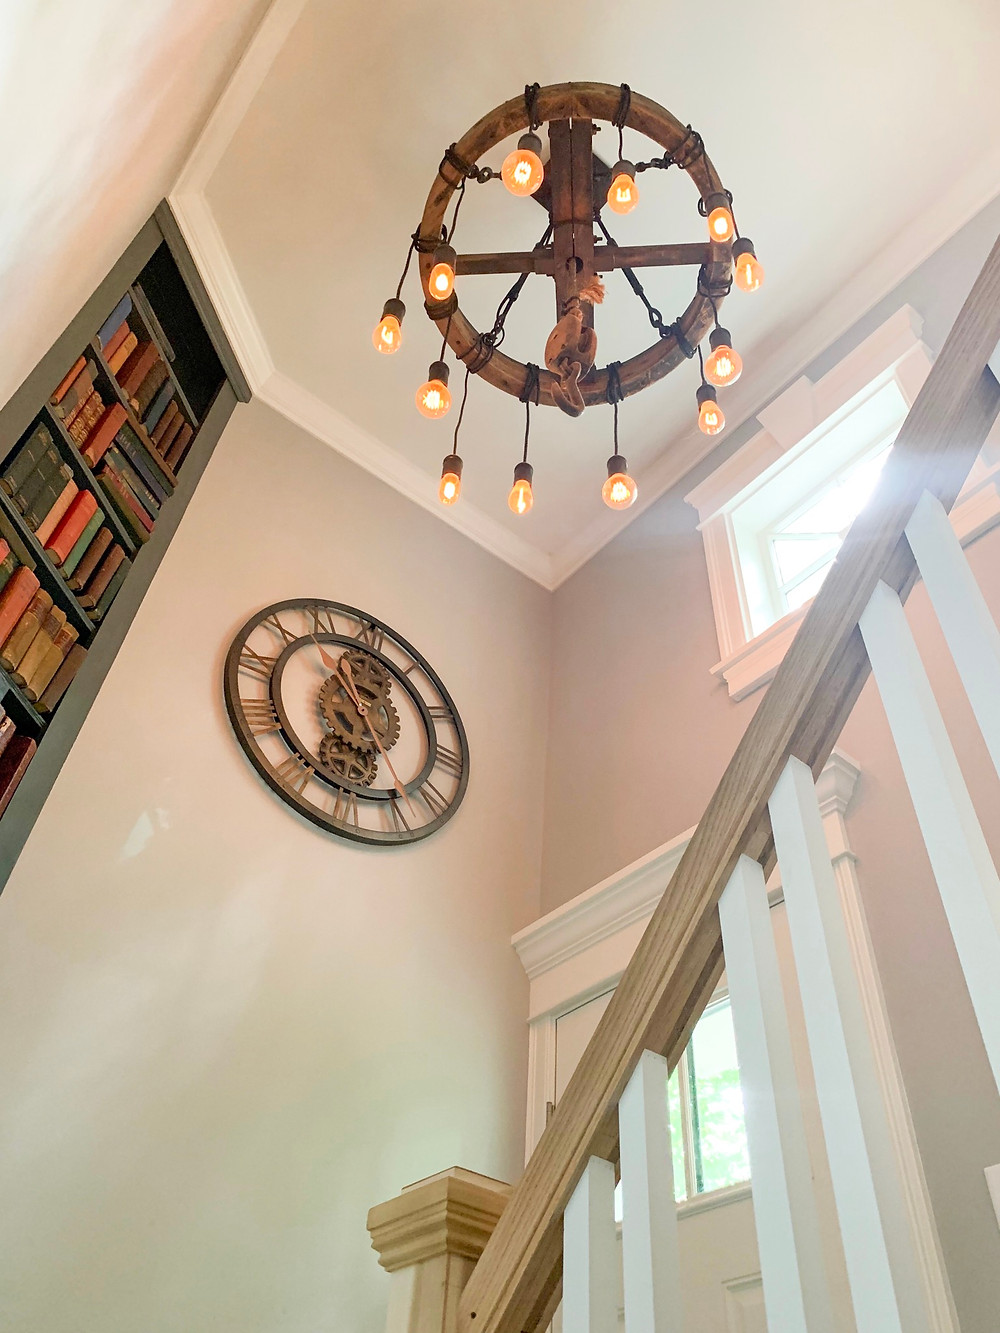 Repurposed Vintage Wheel Barrel is the base structure to this Custom Lighting Fixture with Edison Bulbs which illuminates the stairway at the original Manville Library in Lincoln, MA, now a residence.